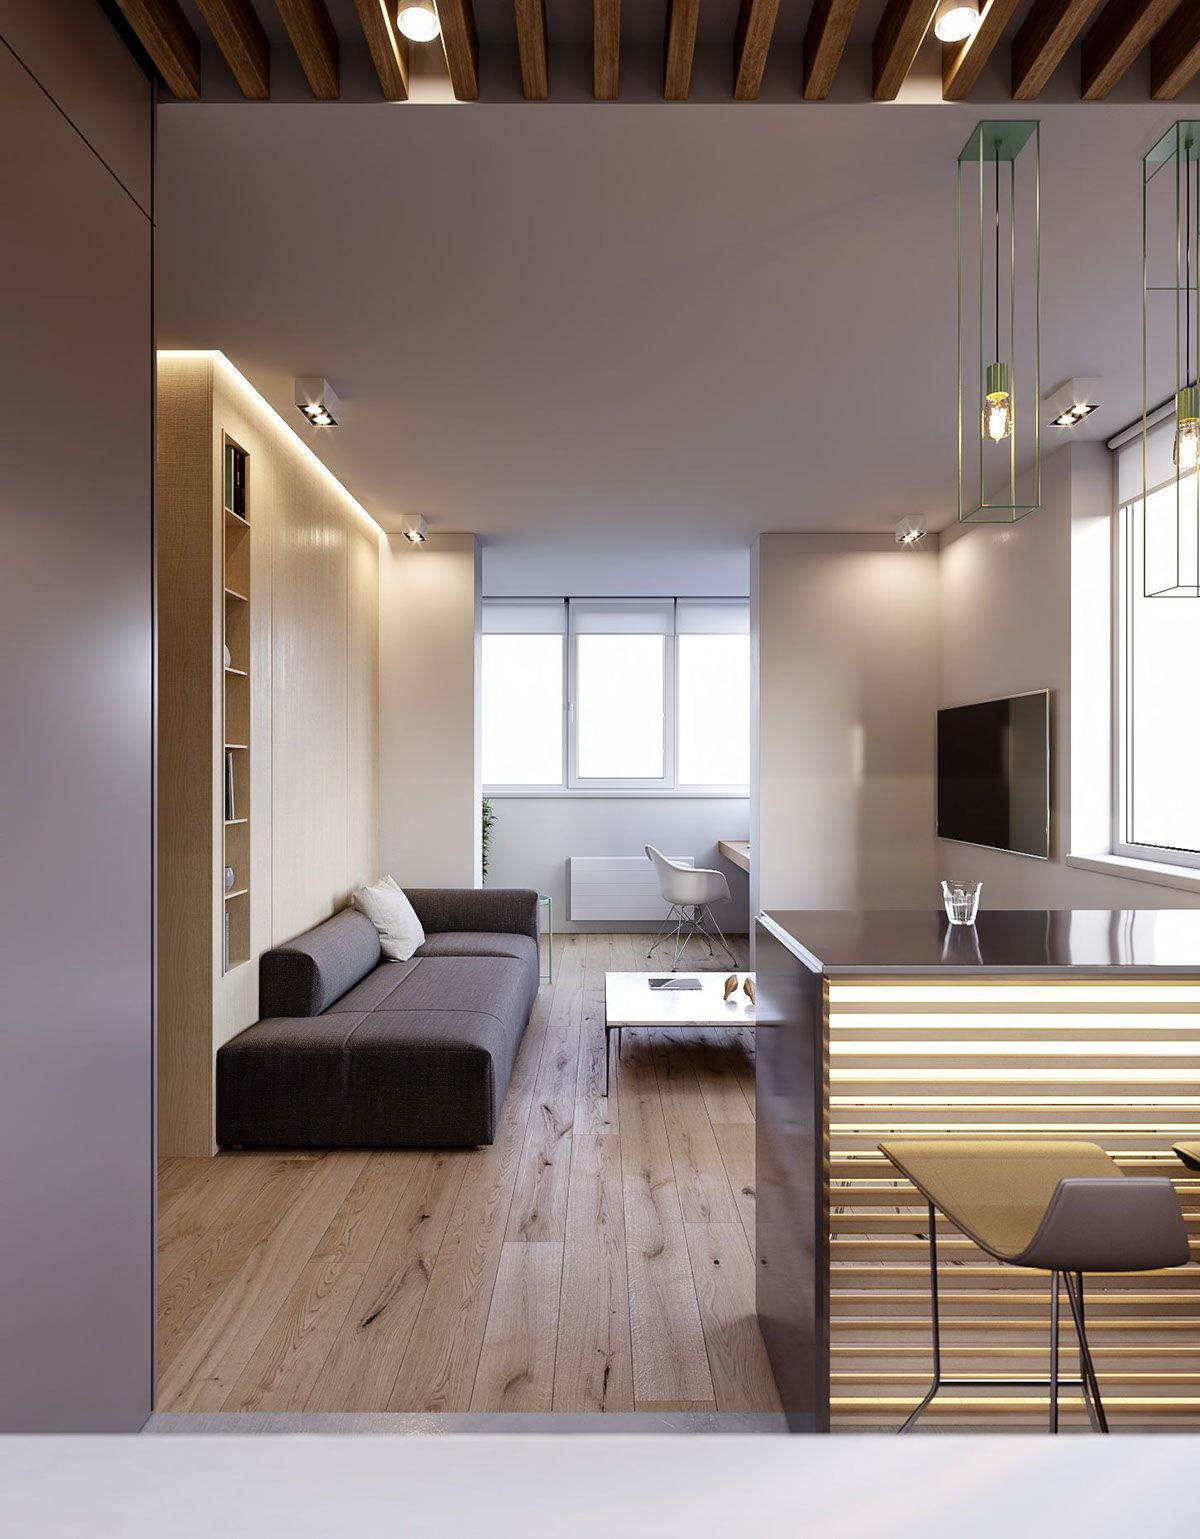 3 Modern Minimalist Apartments For Young Families Minimalist Apartment Decor Minimalist Living Room Apartment Minimalist Home Decor